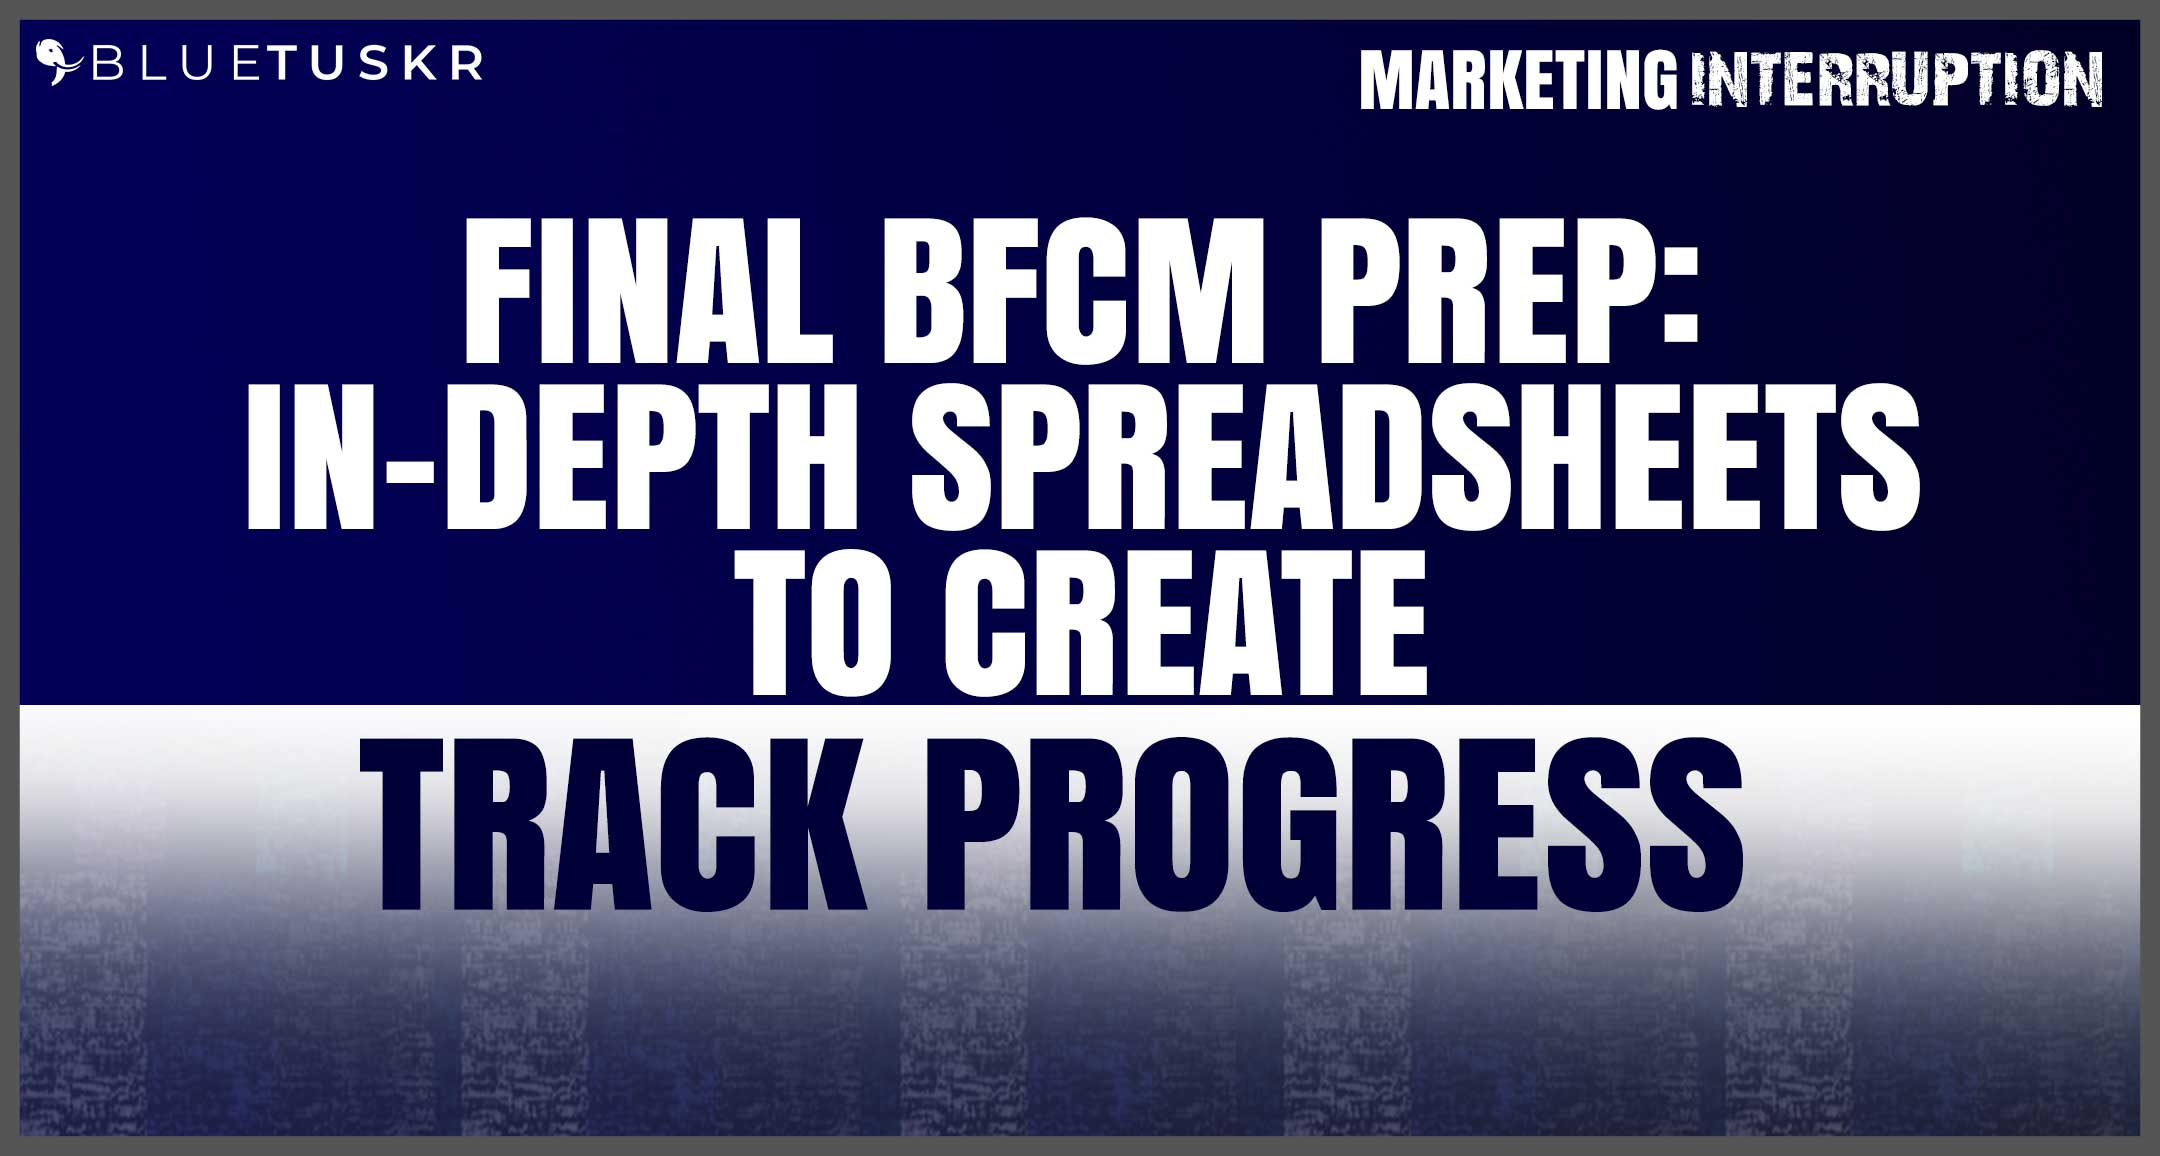 Final BFCM Prep: In-depth Spreadsheets to Create to Track Progress